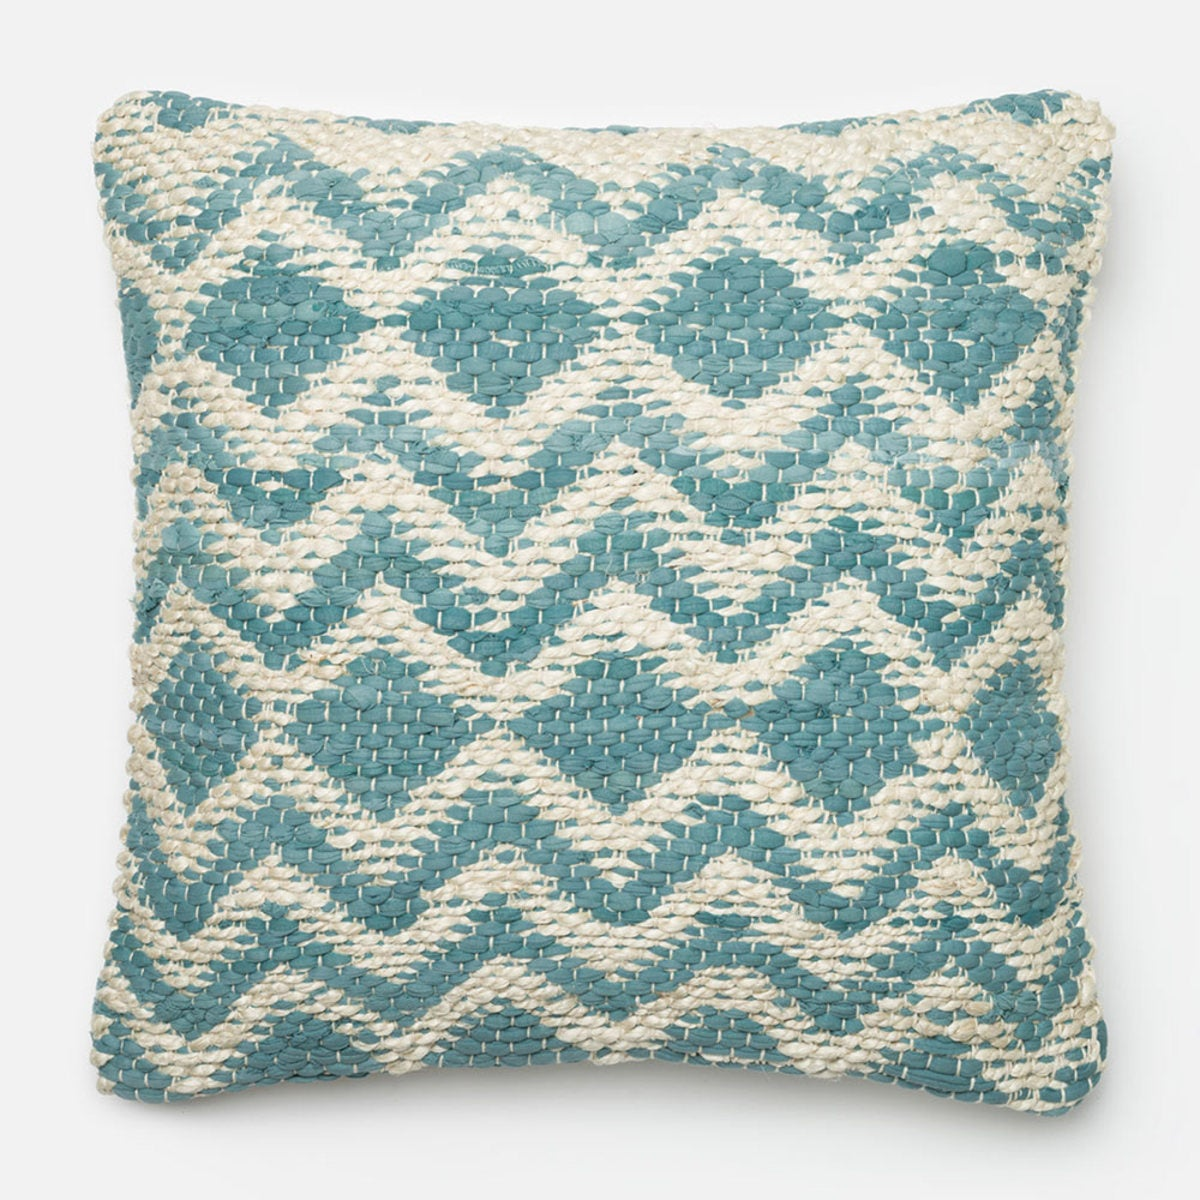 Loloi Handwoven Easy Geo Throw Pillow - Blue